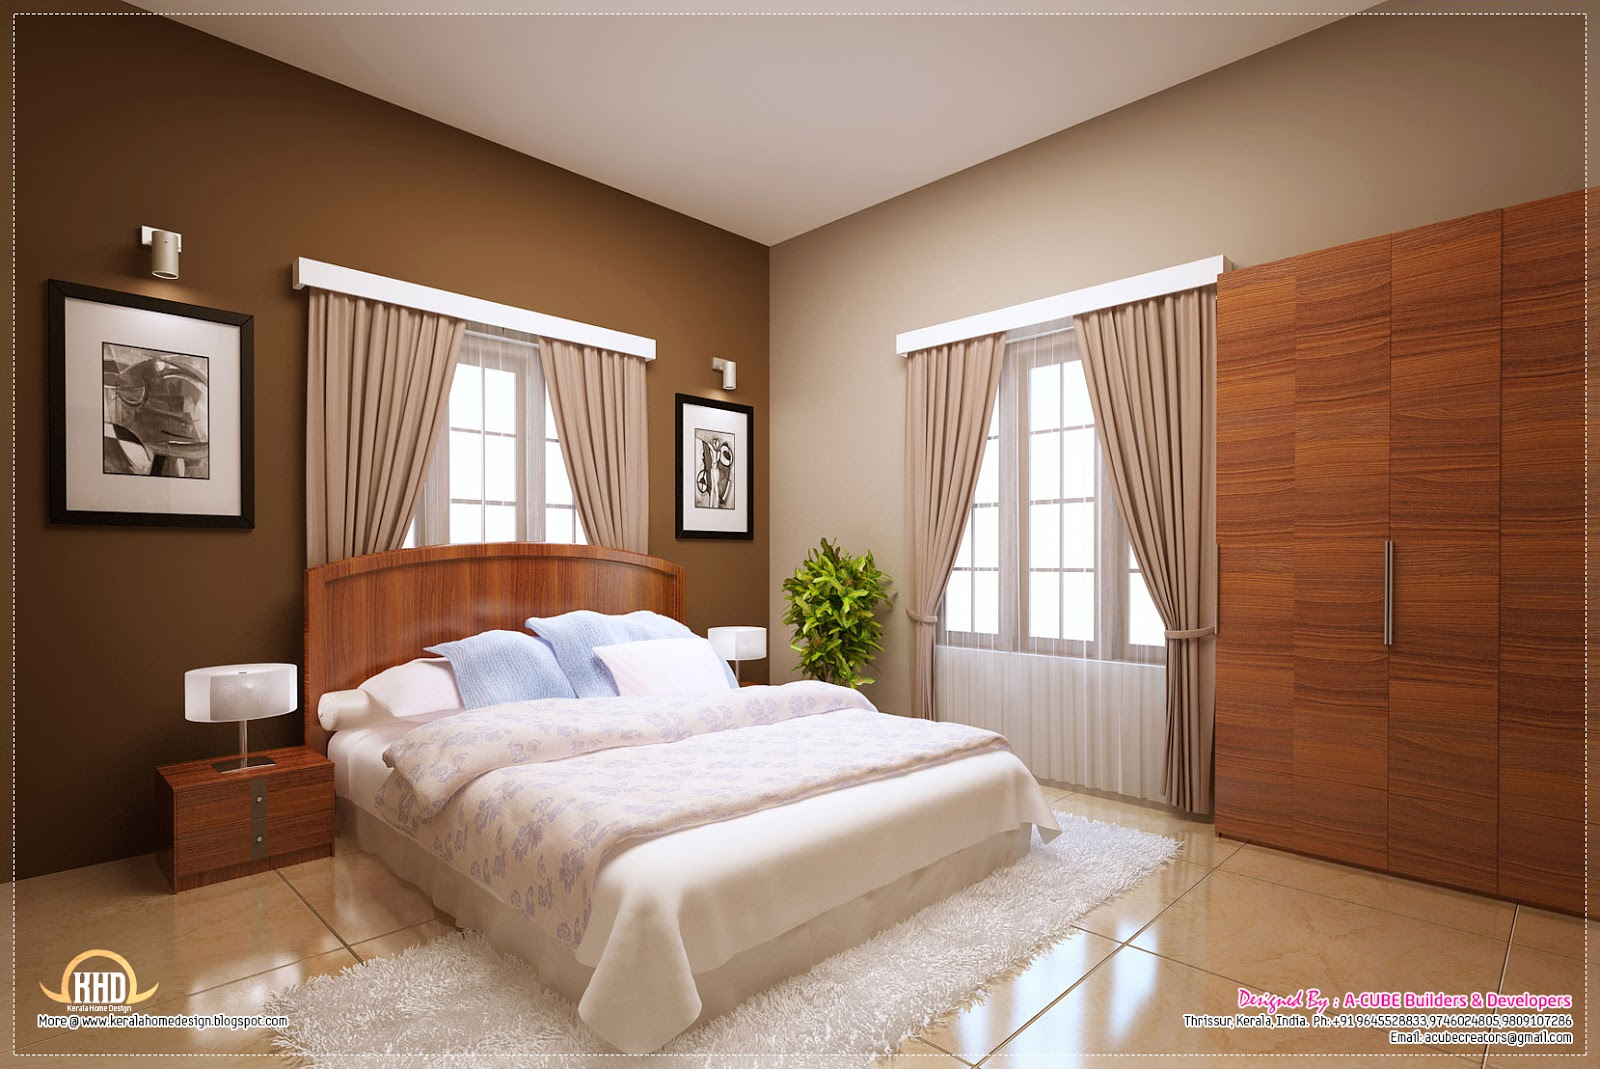 Awesome interior decoration ideas kerala home design and for House decoration bedroom